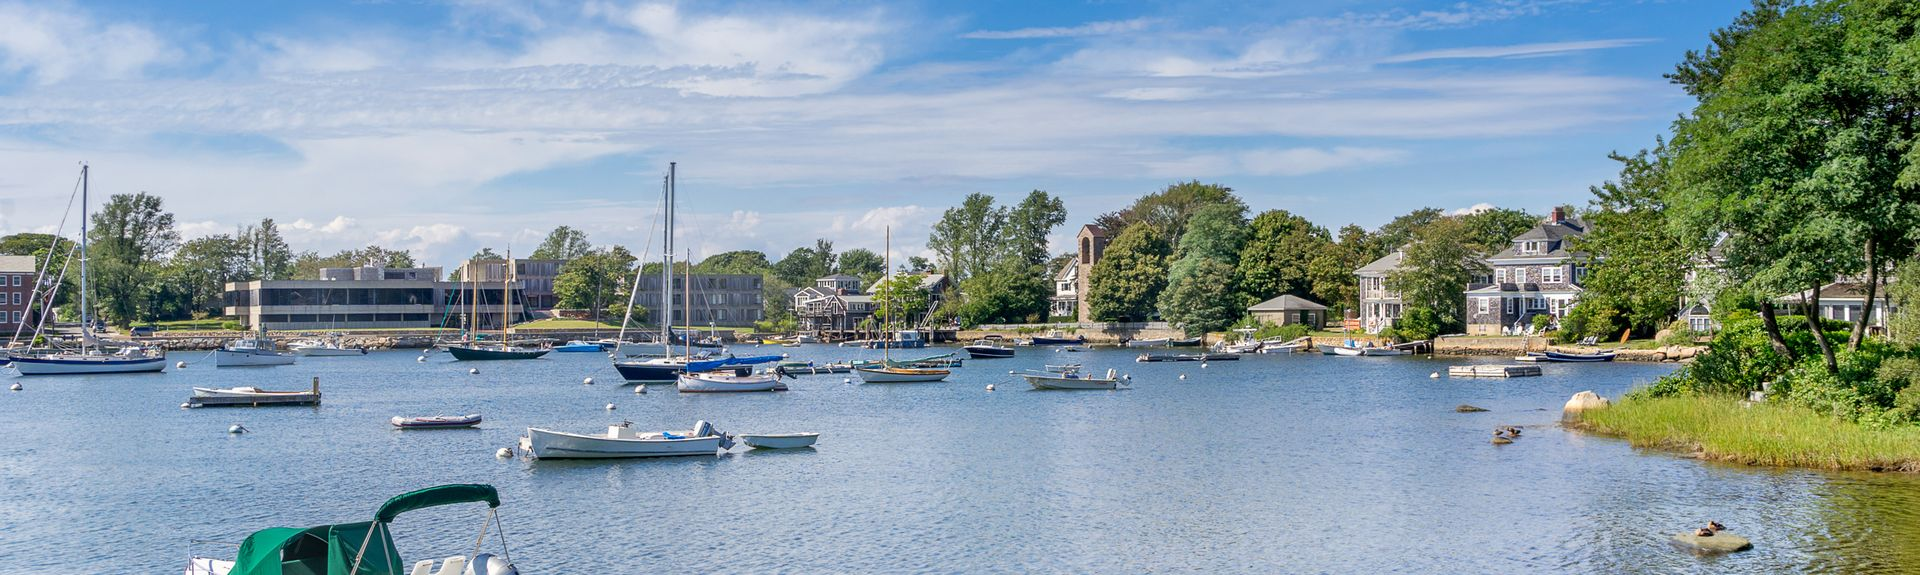 Falmouth, Massachusetts, Estados Unidos